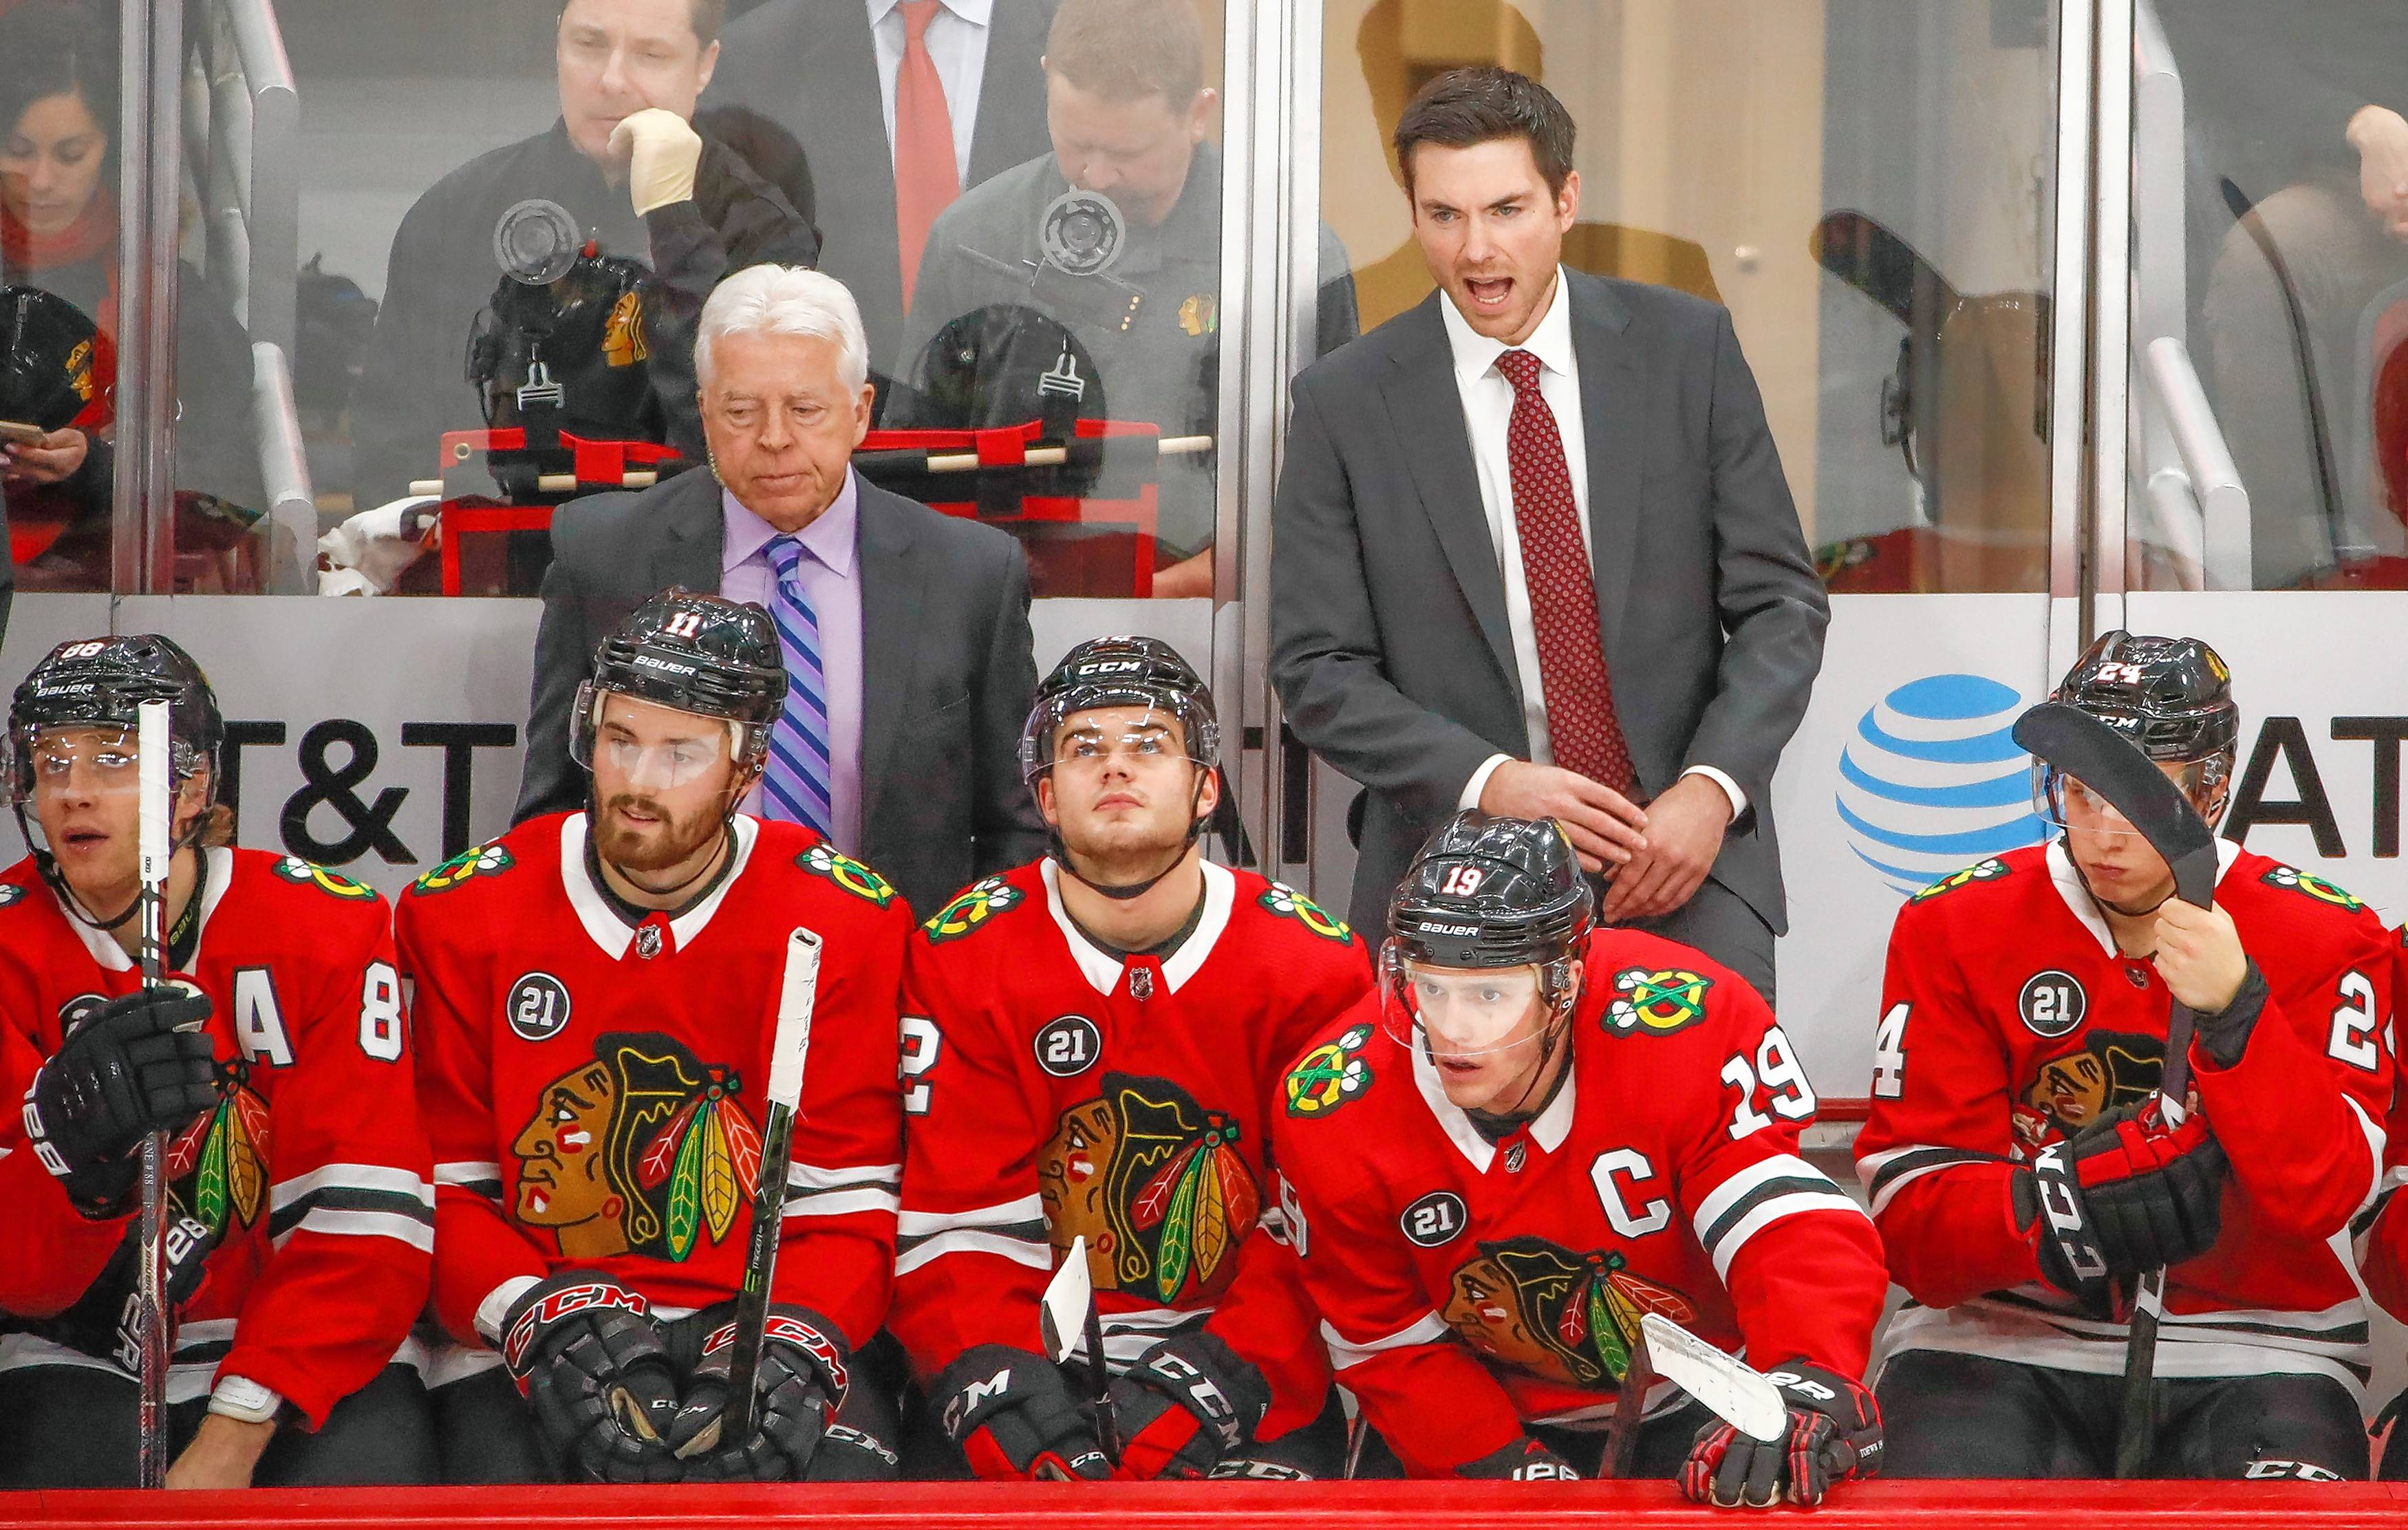 Chicago Blackhawks head coach Jeremy Colliton yells to his team during the third period of an NHL hockey game against the Nashville Predators Wednesday, Jan. 9, 2019, in Chicago. (AP Photo/Kamil Krzaczynski)